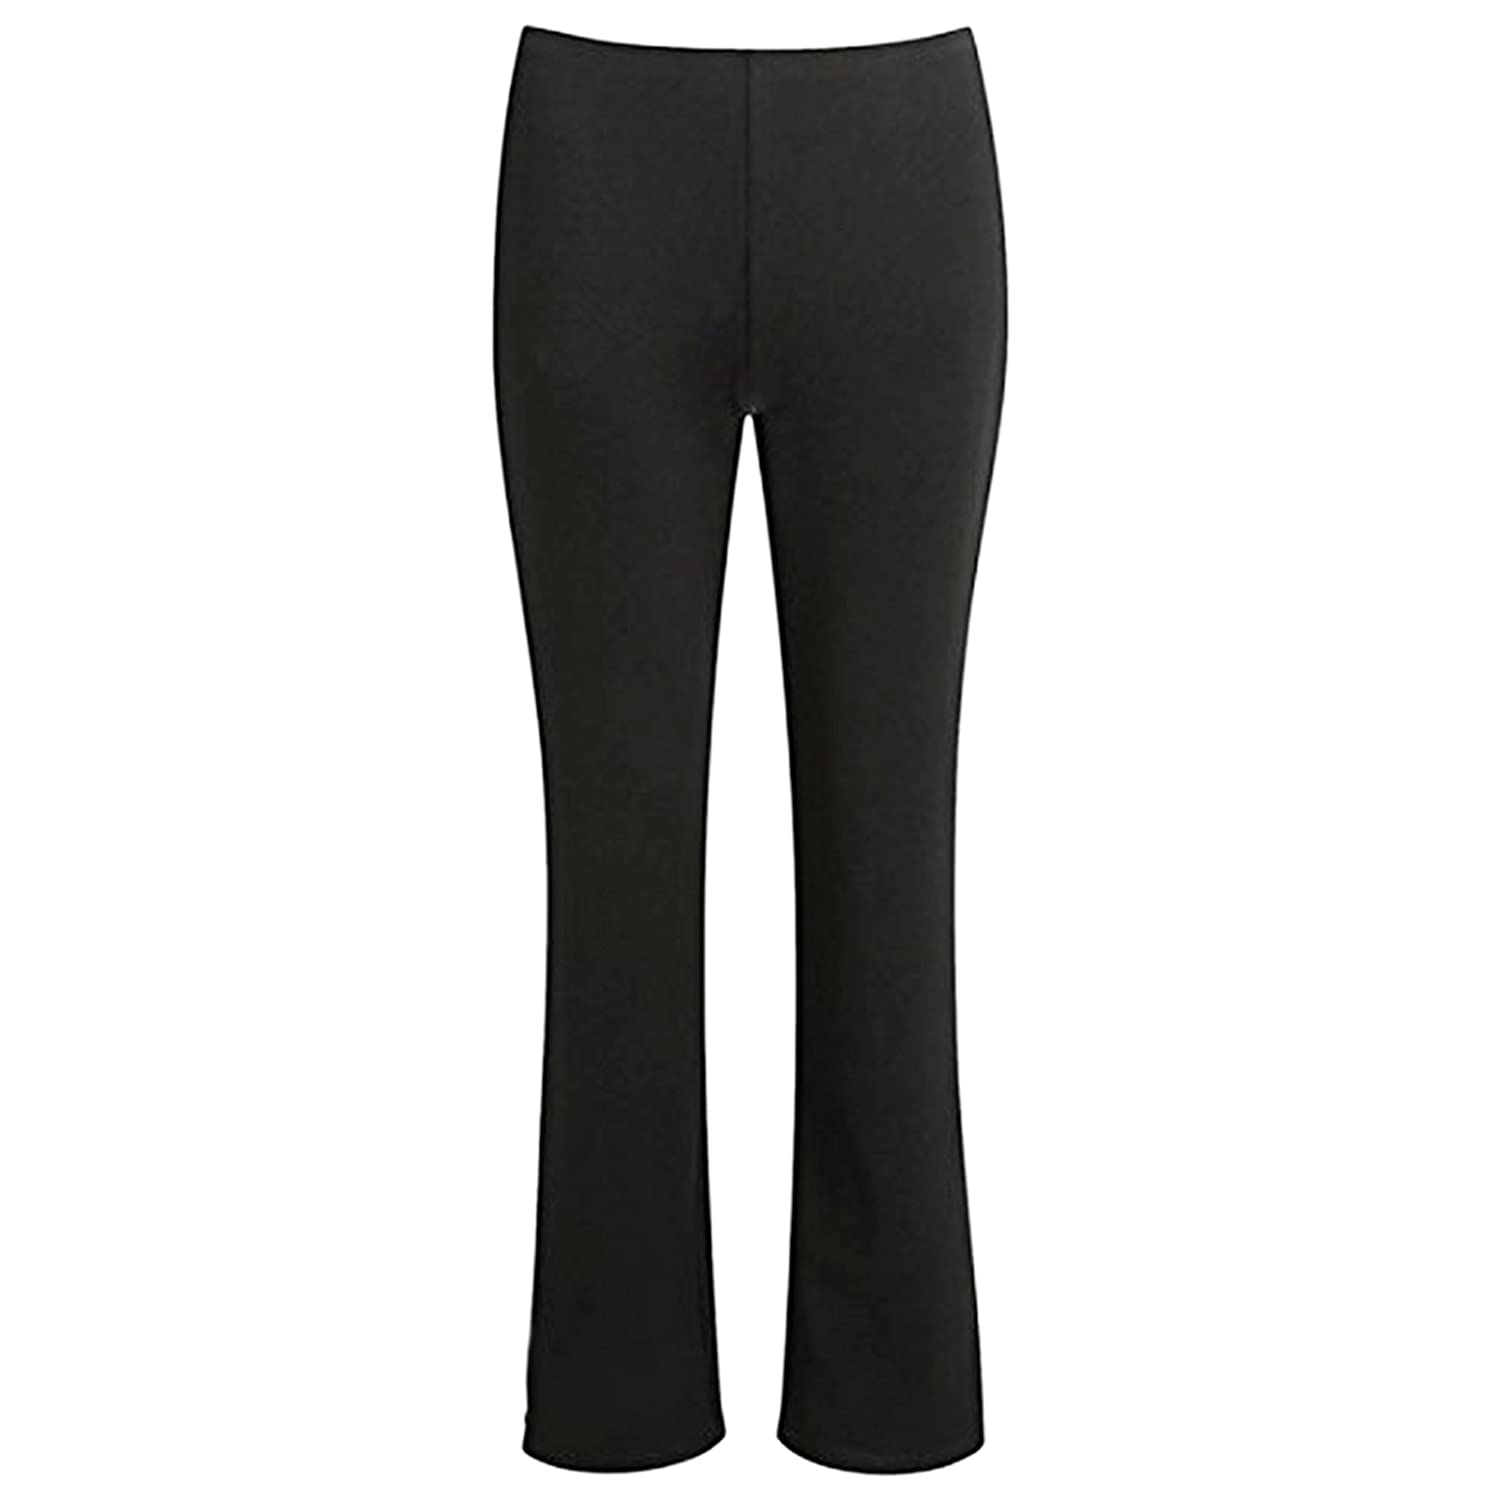 7cba333582fc2 MyShoeStore (Pack of 2 Ladies Bootleg Trousers Women Boot Cut High Rise  Stretch Soft Finely Ribbed Pull On Nurse…